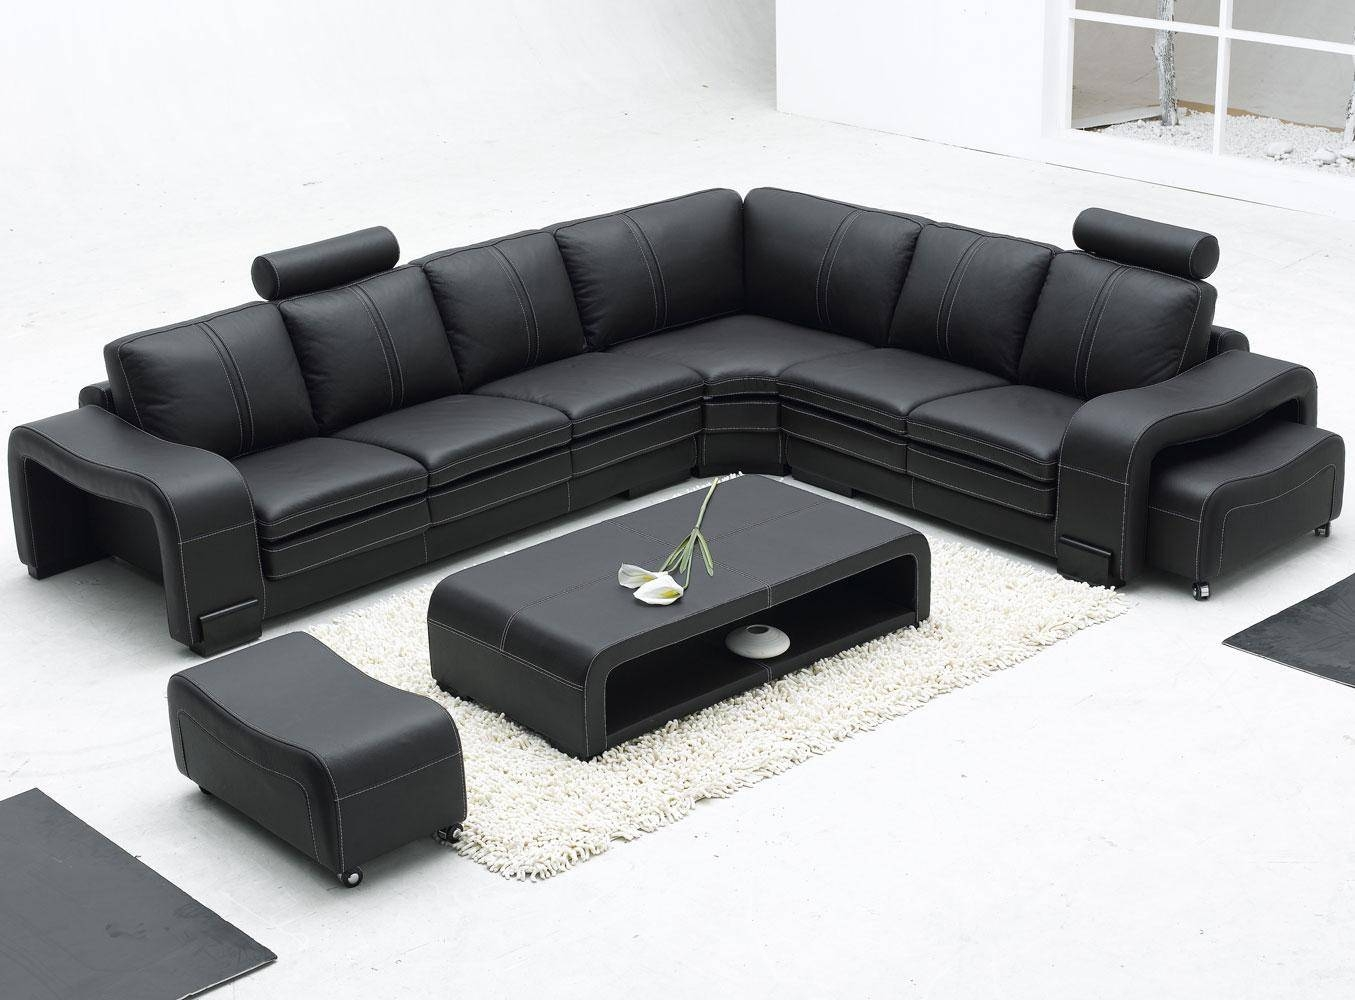 Modern Leather Sofa With Chaise. Black Leather Sectional Sofa With regarding Sofas and Sectionals (Image 17 of 30)